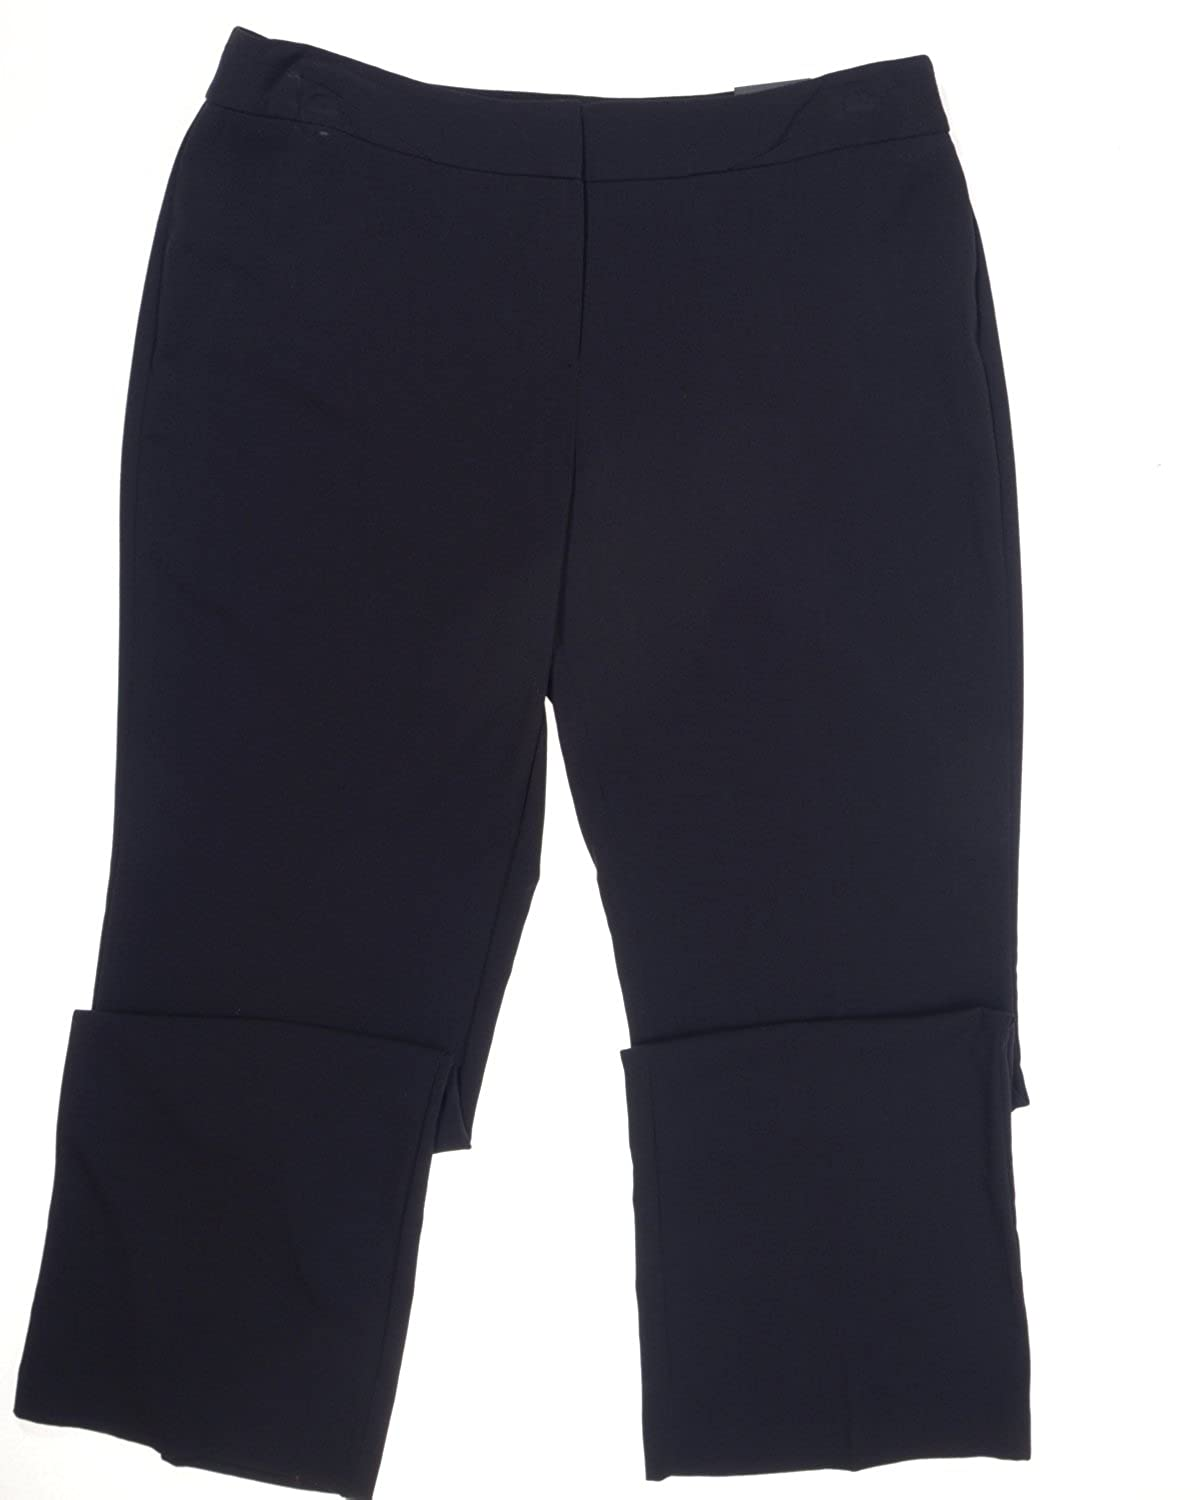 Style & co. Curvy-Fit Tummy-Control Pants Size 10